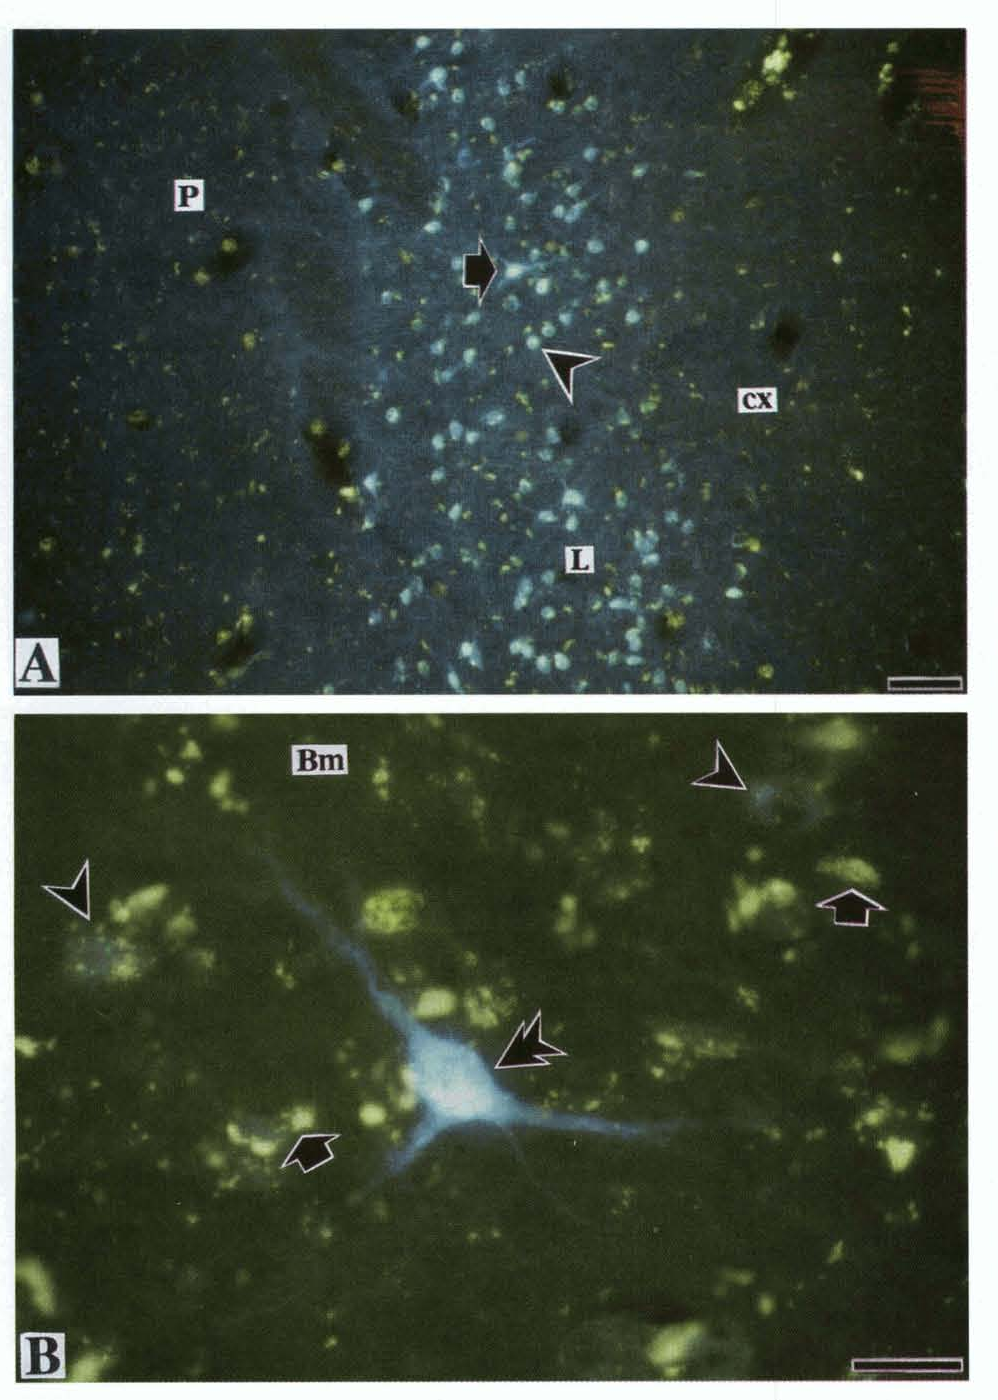 Fig. 13. High-power fluorescence photomicrograph of retrogradely labeled cells in the arnygdaloid nuclei after injection into the ventral zone of area EP, in DlI,R. A, retm-